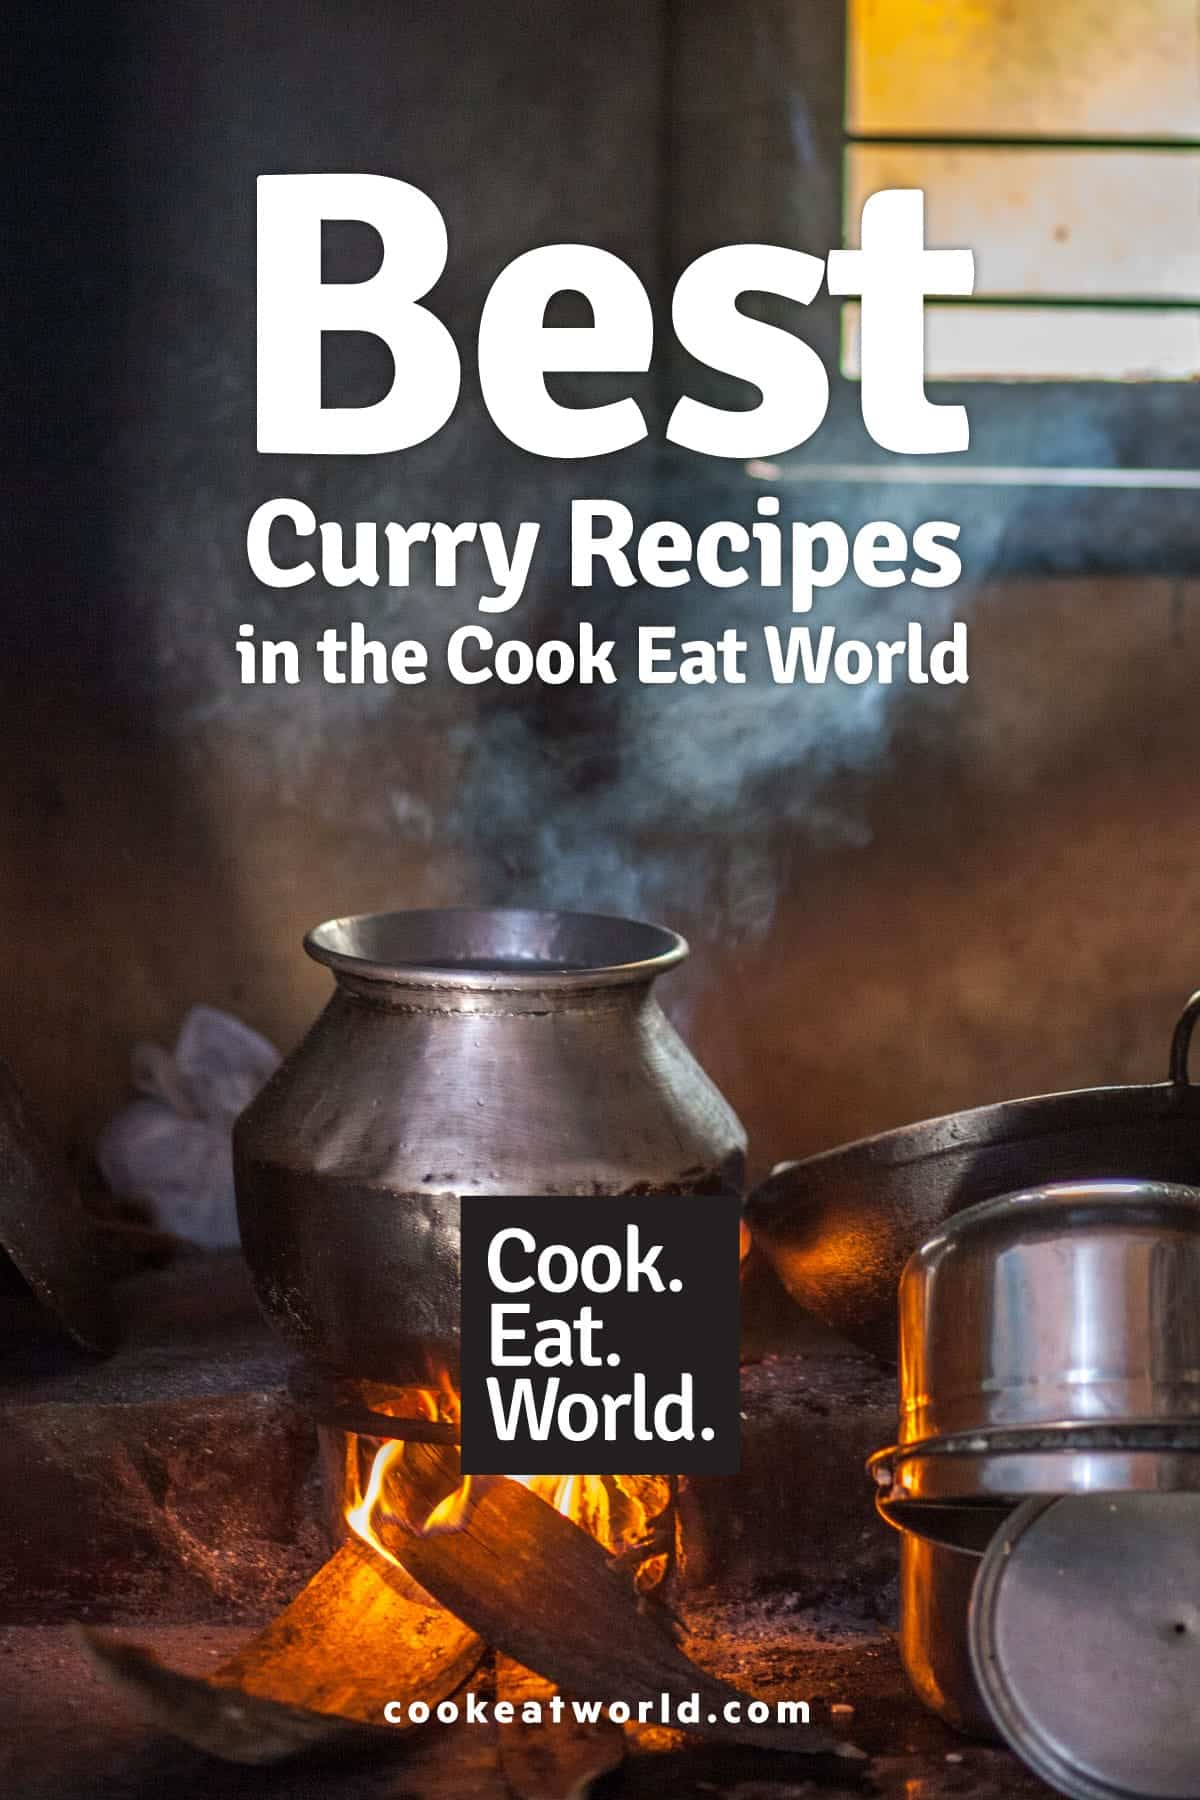 A large silver pot of curry sits over an open flame in Rajasthan India - leading to post about the best curry recipes from cookeatworld.com